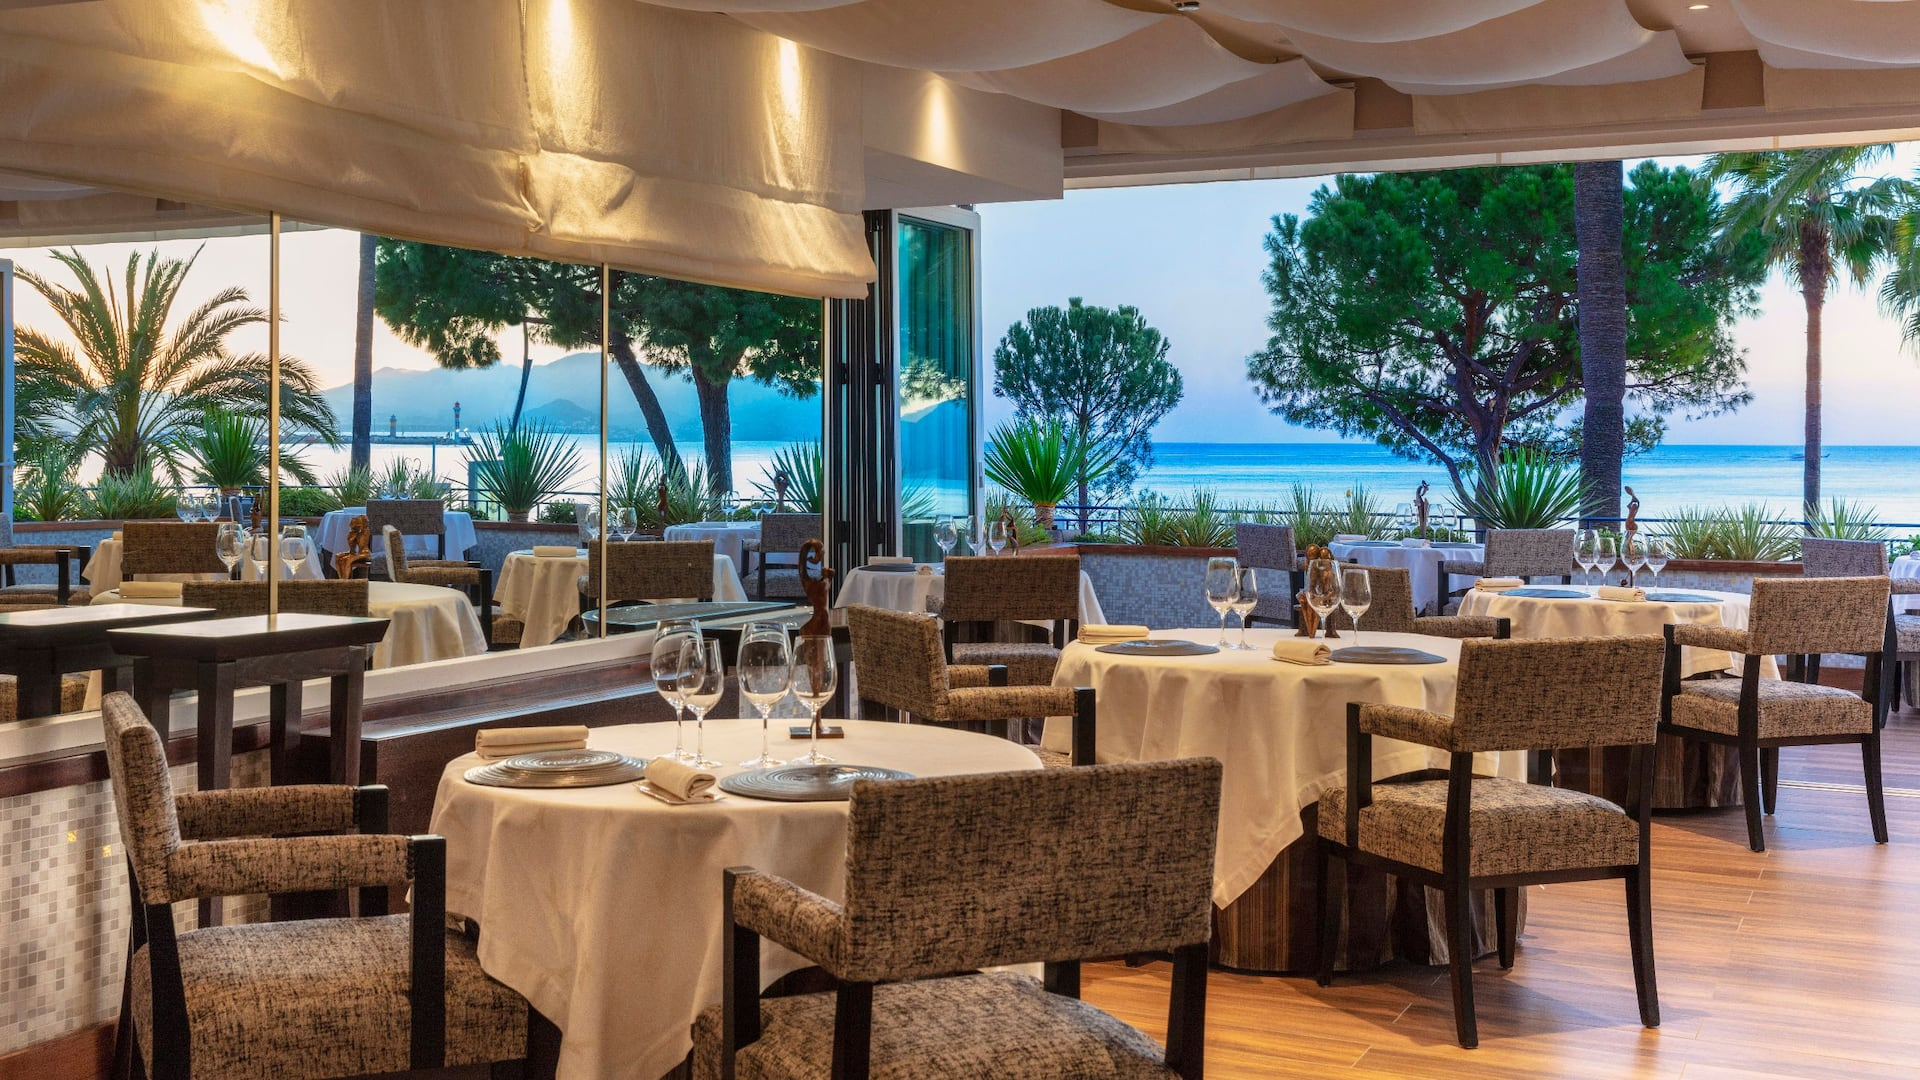 Michelin-starred Restaurant La Palme d'Or at Hôtel Martinez Cannes by Hyatt